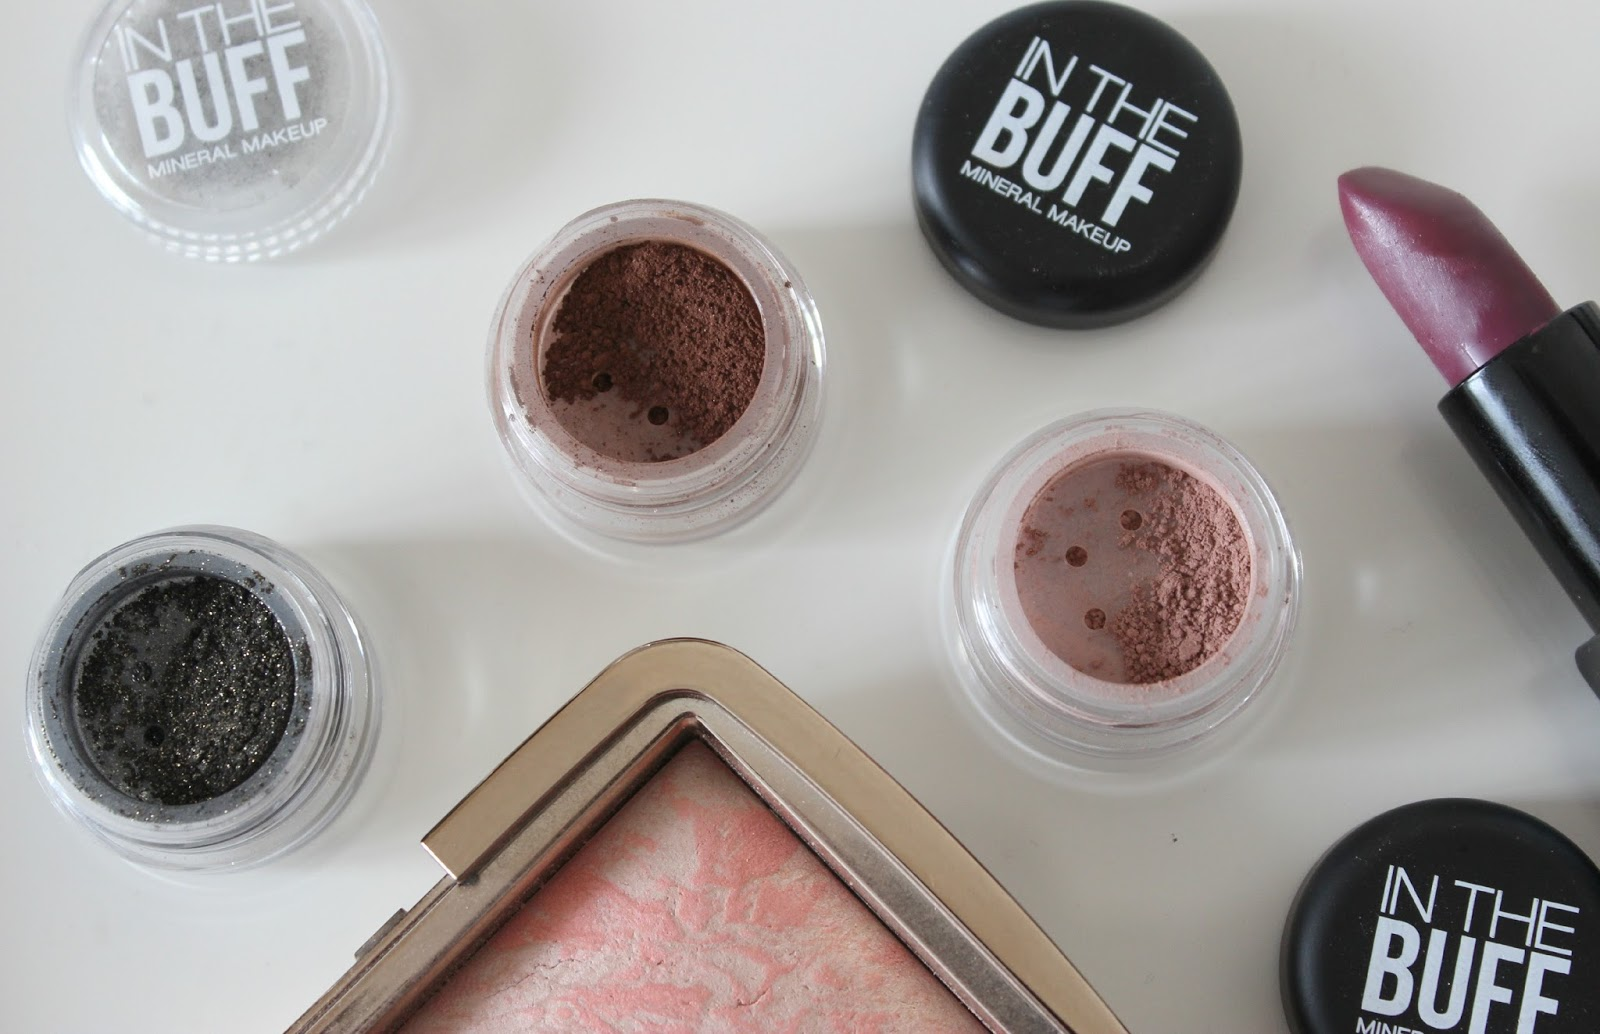 A picture of In The Buff mineral eyeshadows in Dark Skies, Baked Earth and Earth